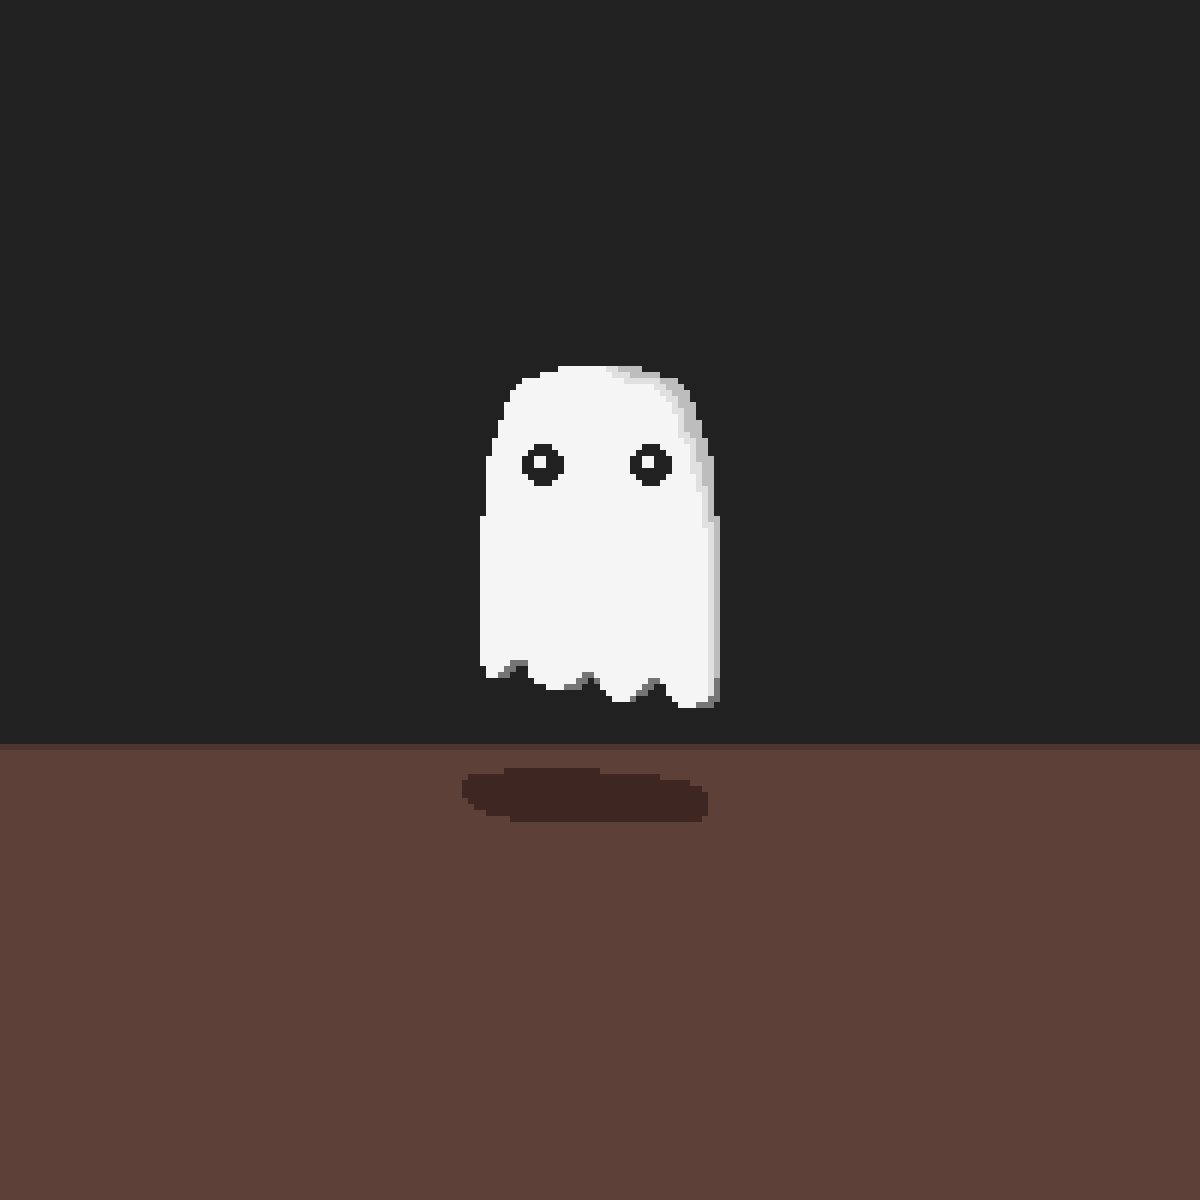 boo by Indie4caps